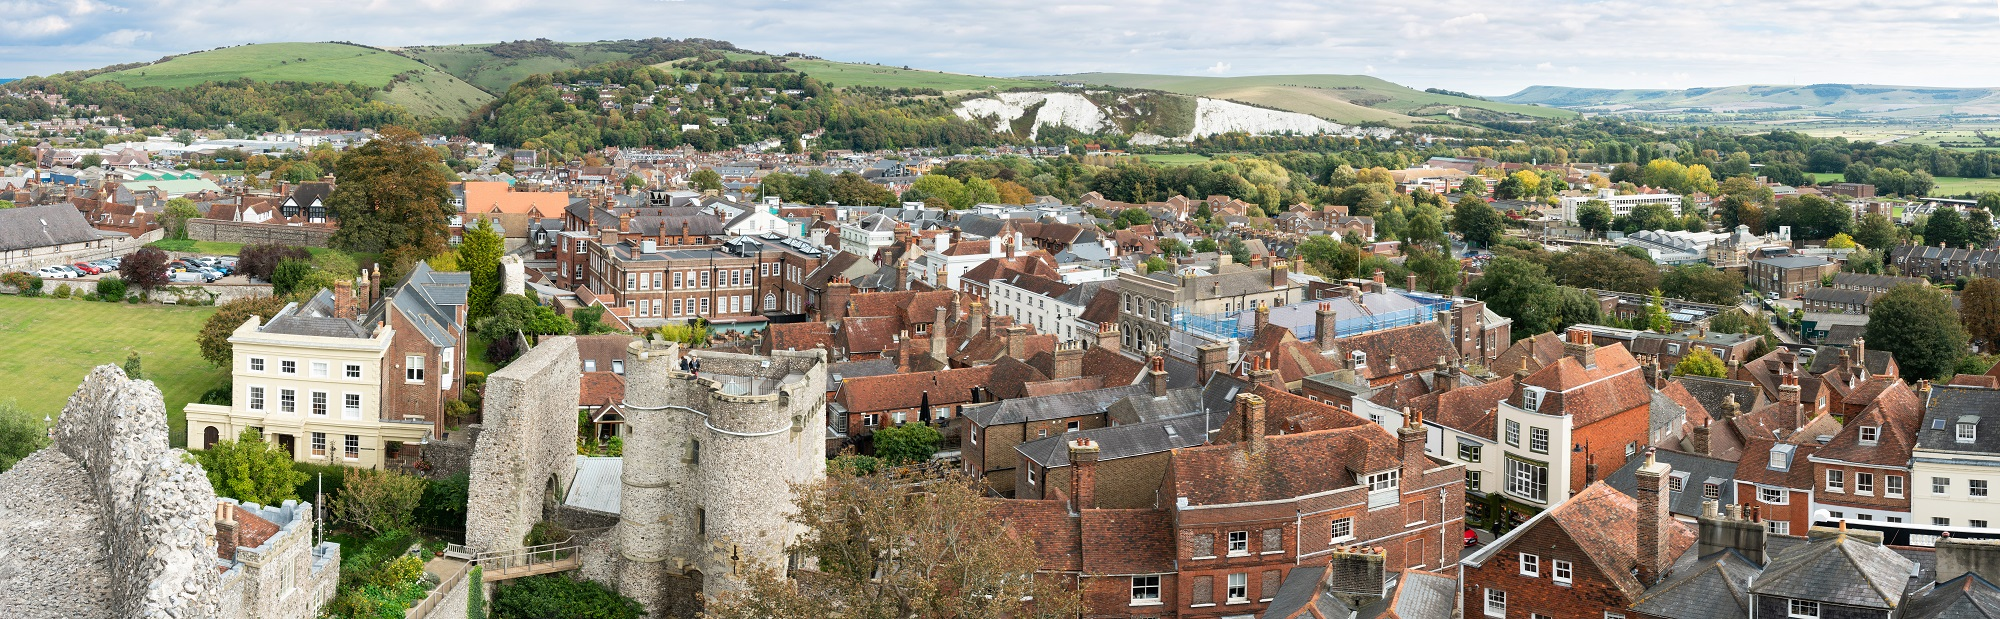 Pesticide-Free Lewes in East Sussex - a success story